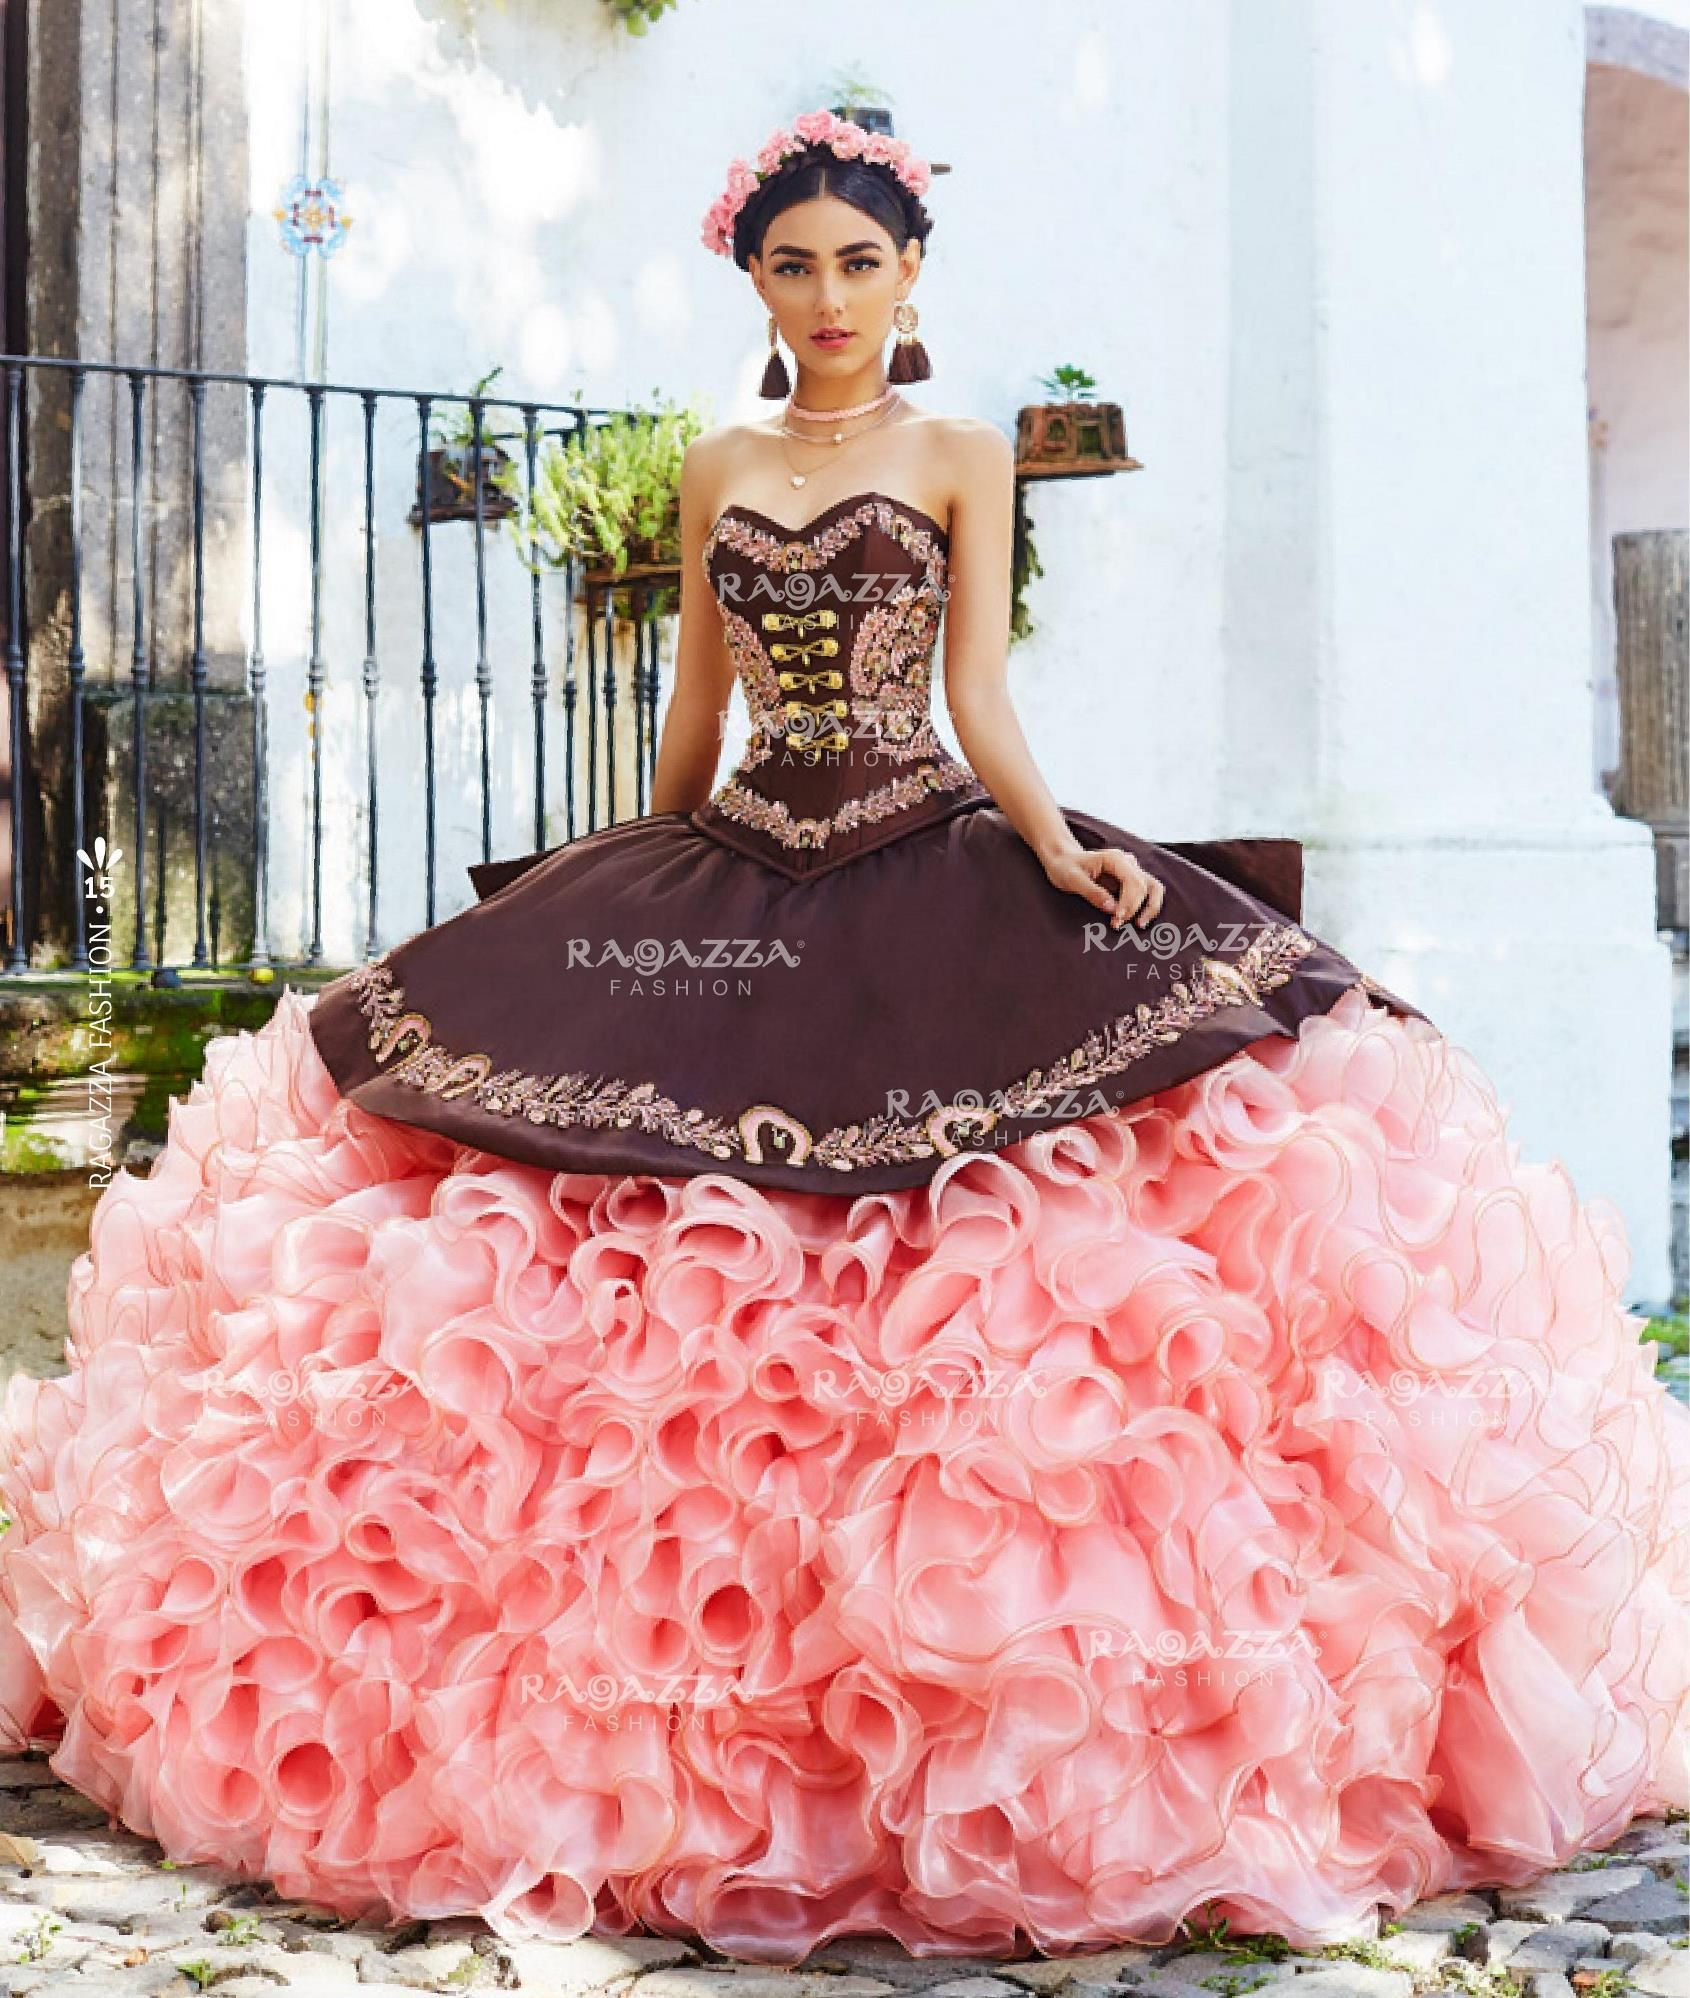 Ruffled Charro Quinceanera Dress by Ragazza Fashion Style M14-114 ...